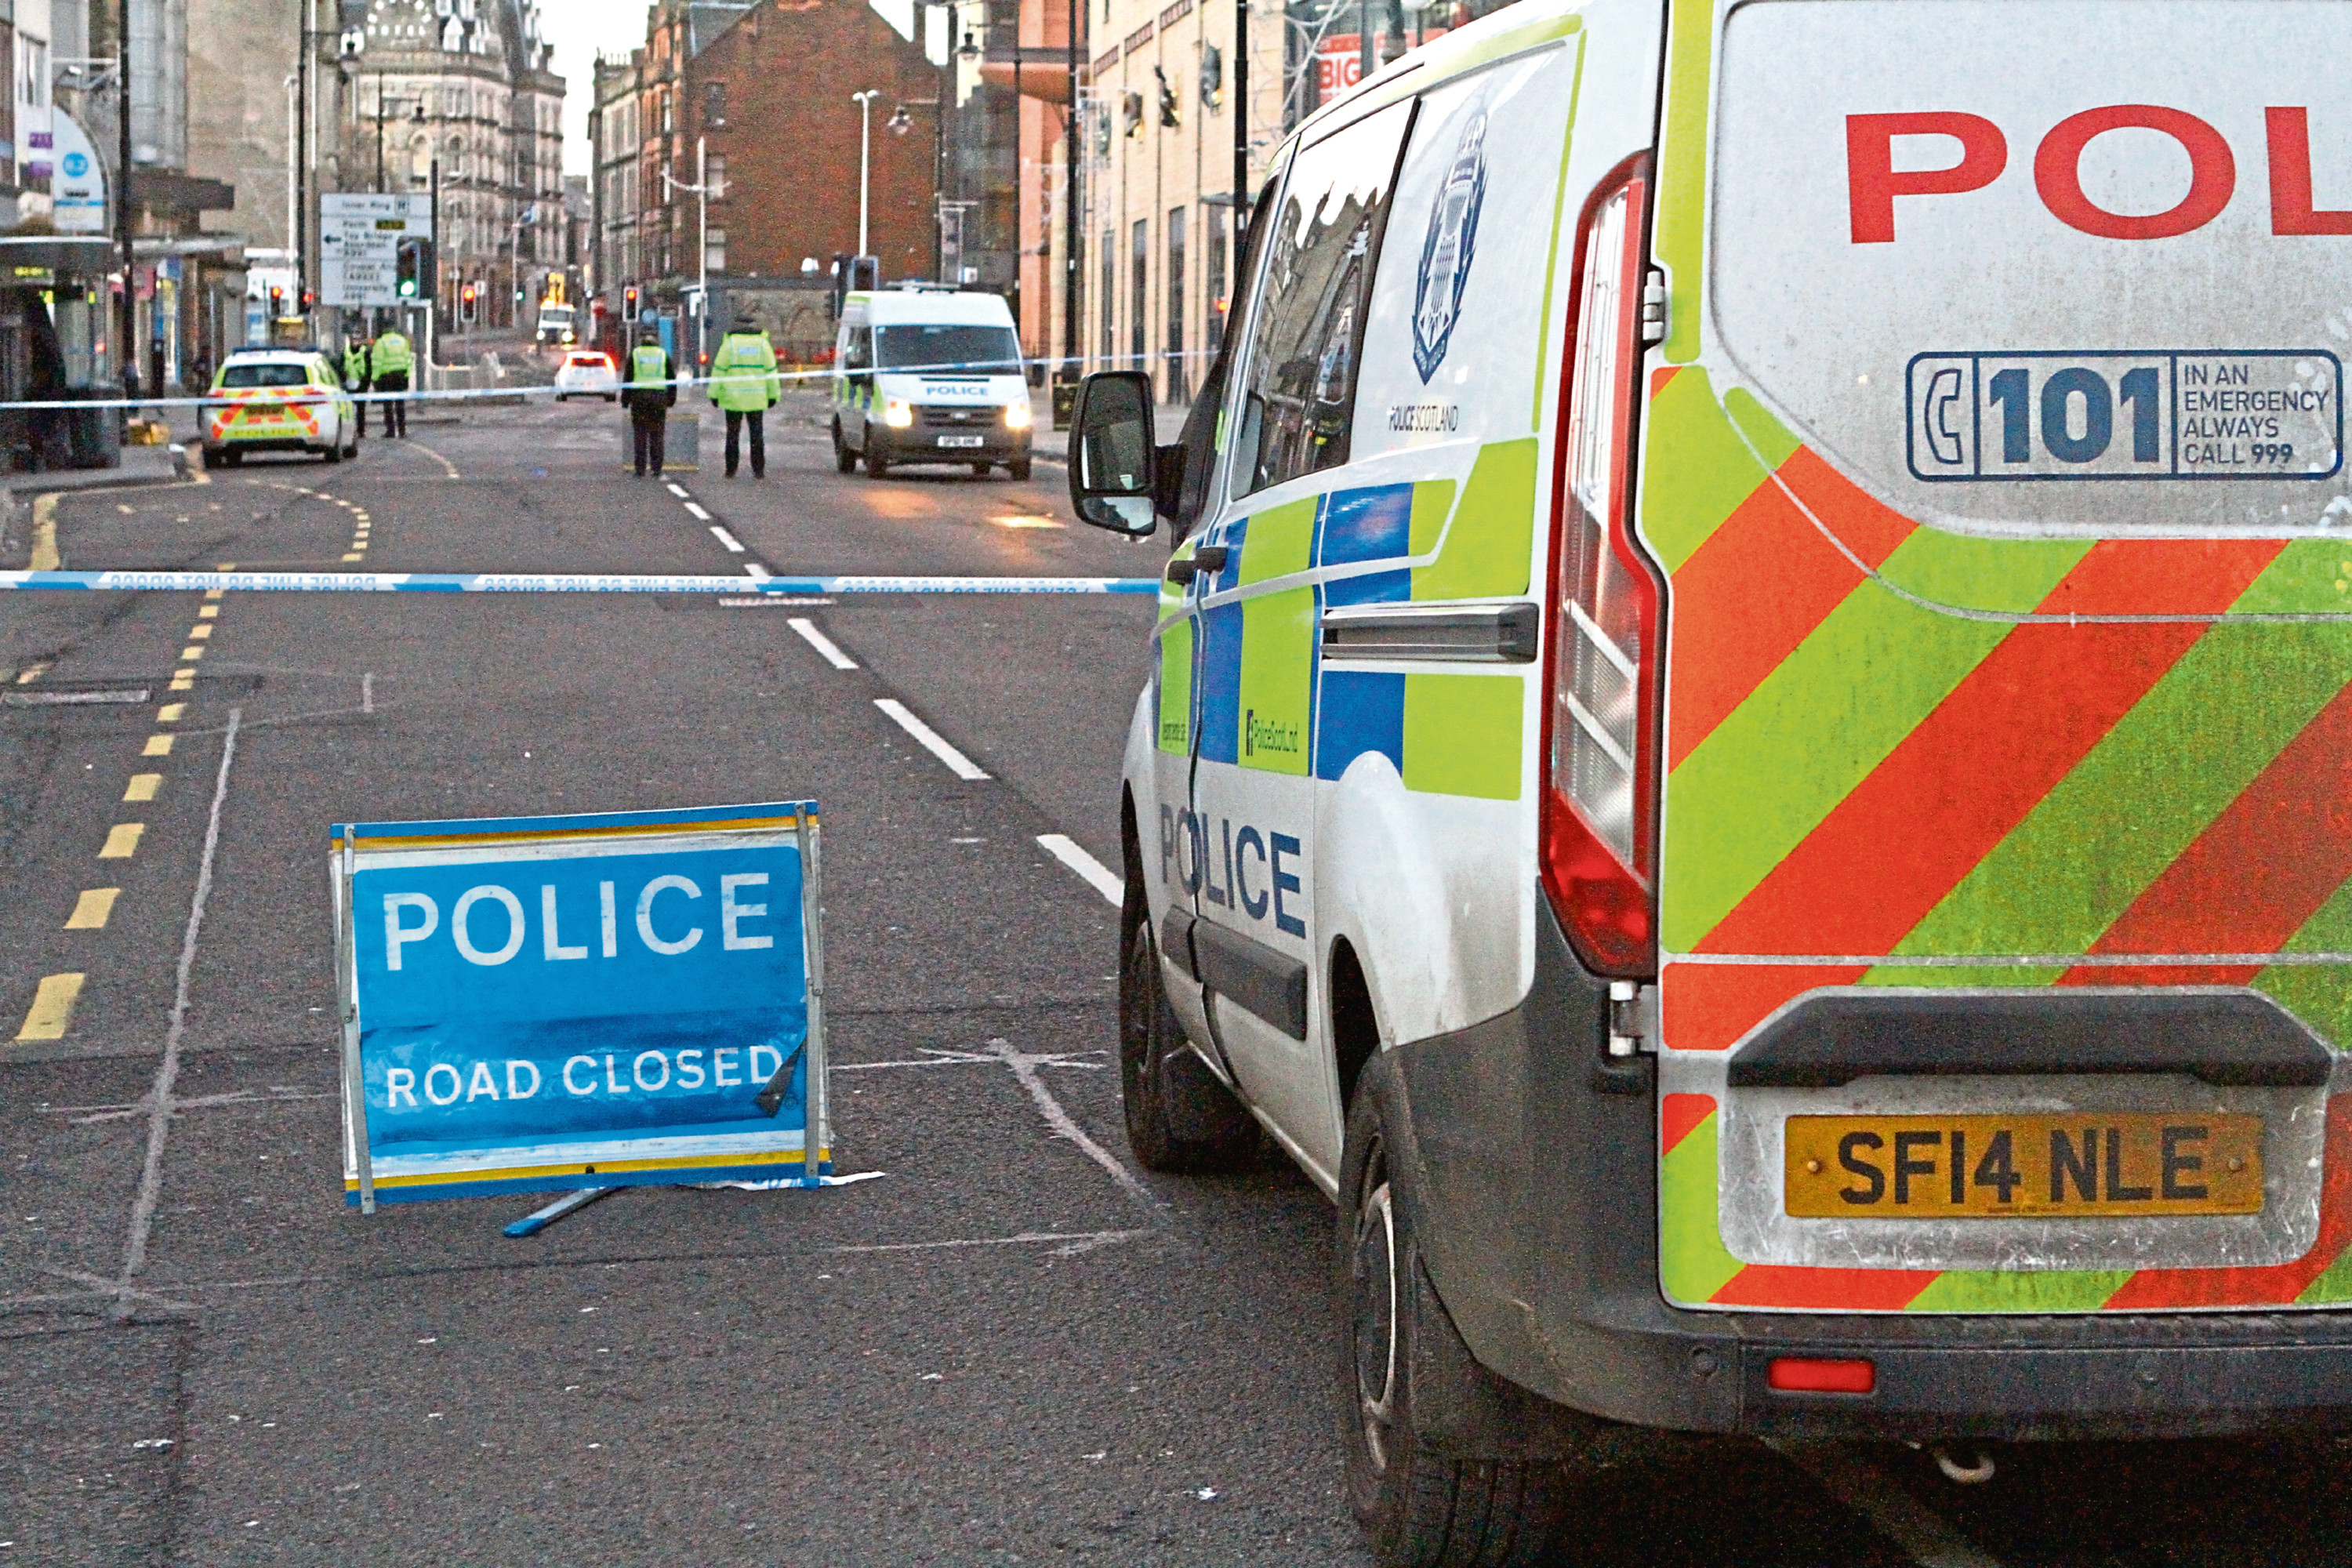 The scene of the incident on Nethergate.